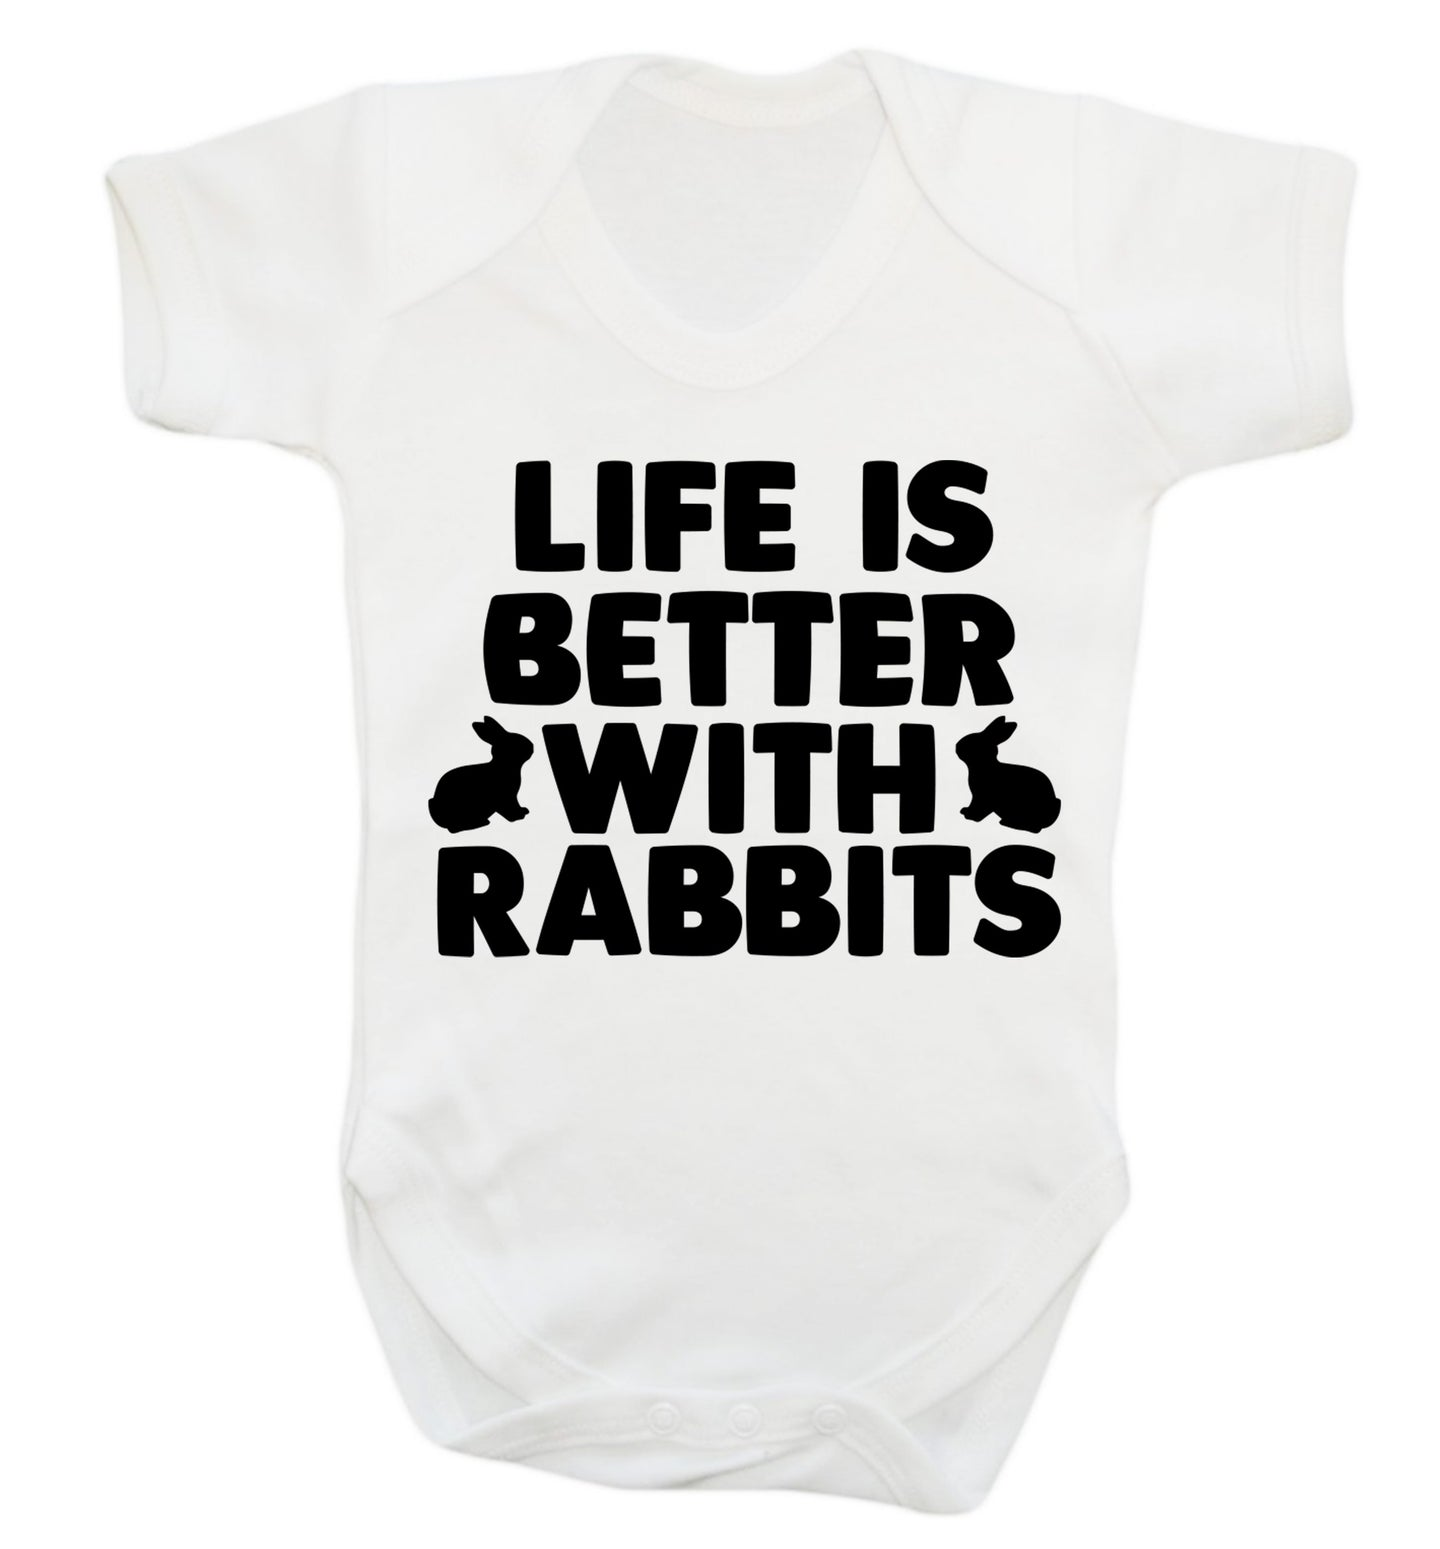 Life is better with rabbits Baby Vest white 18-24 months